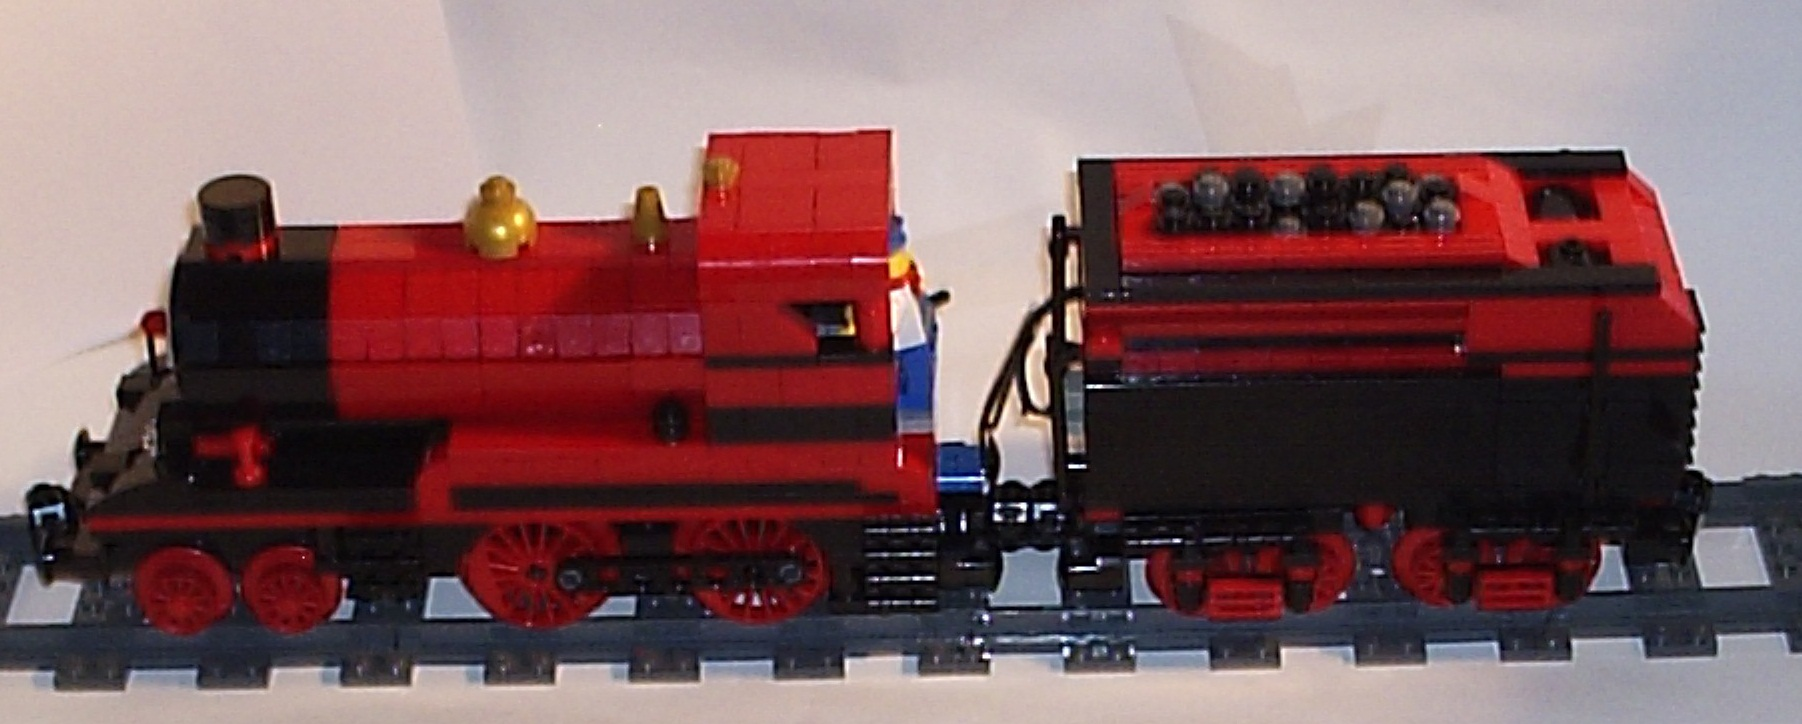 15_07_2012_red_and_black_4_4_0_tender_engine_f.jpg